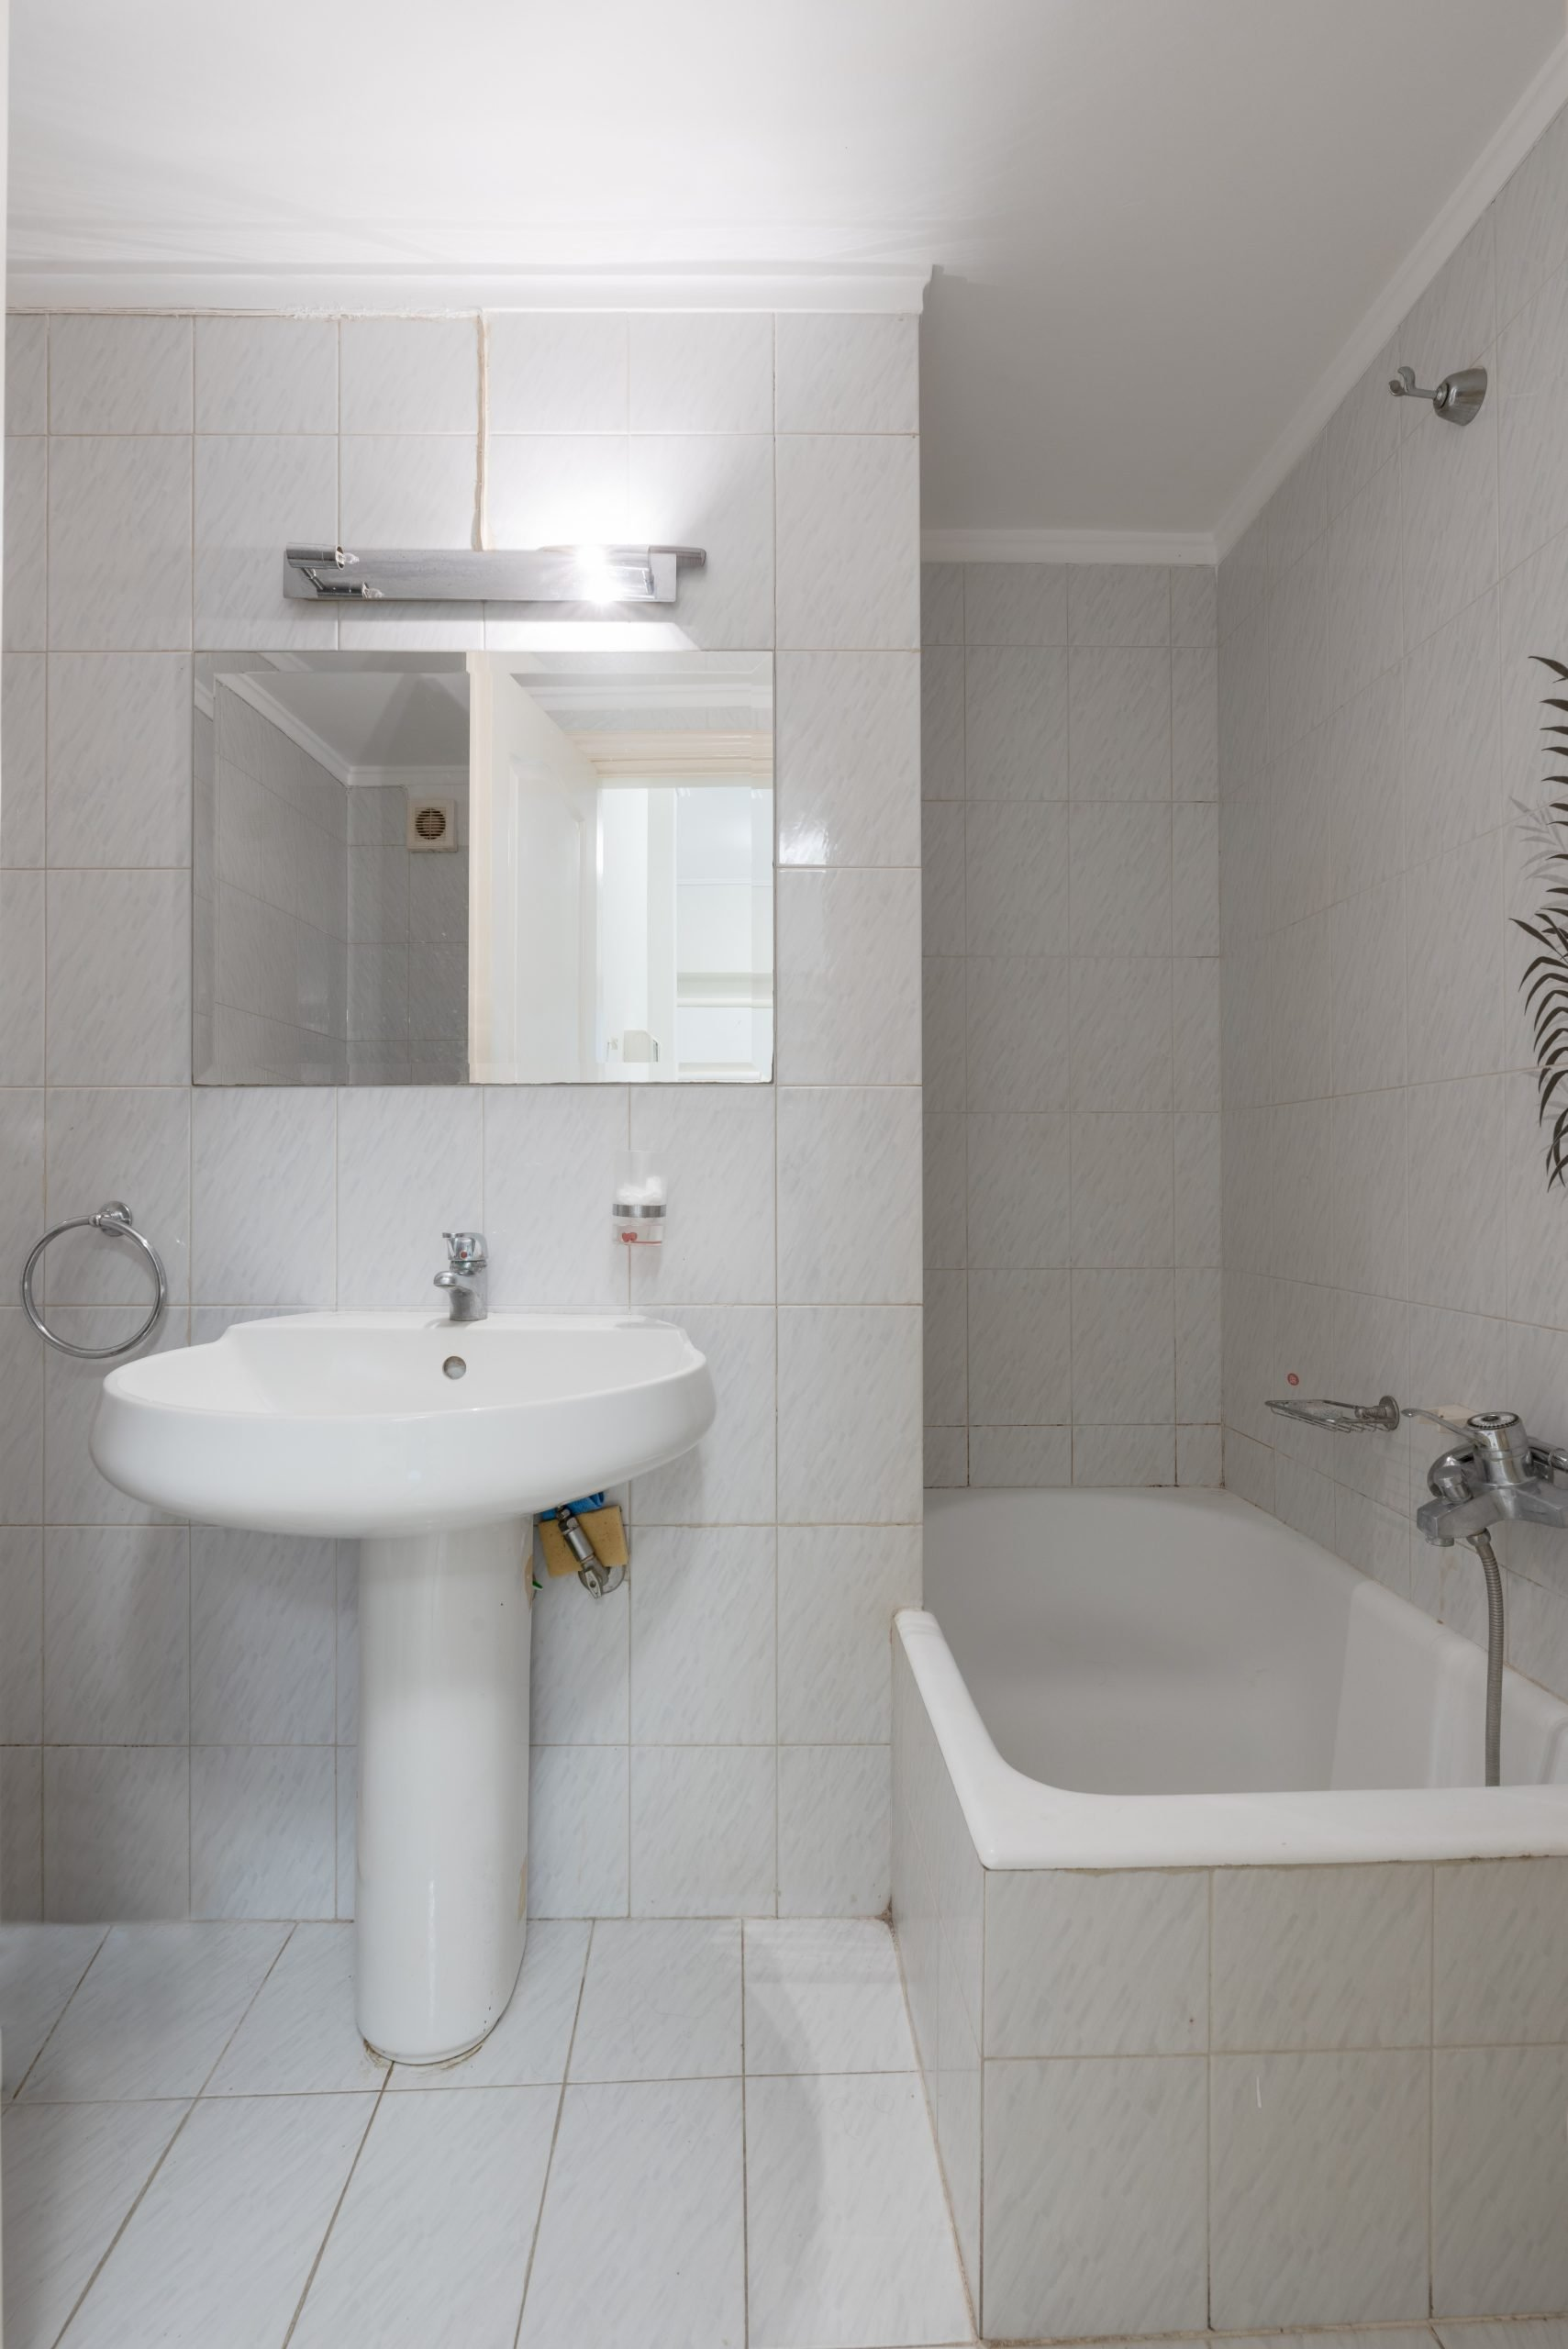 Kastri  - Appartement  - picture 4